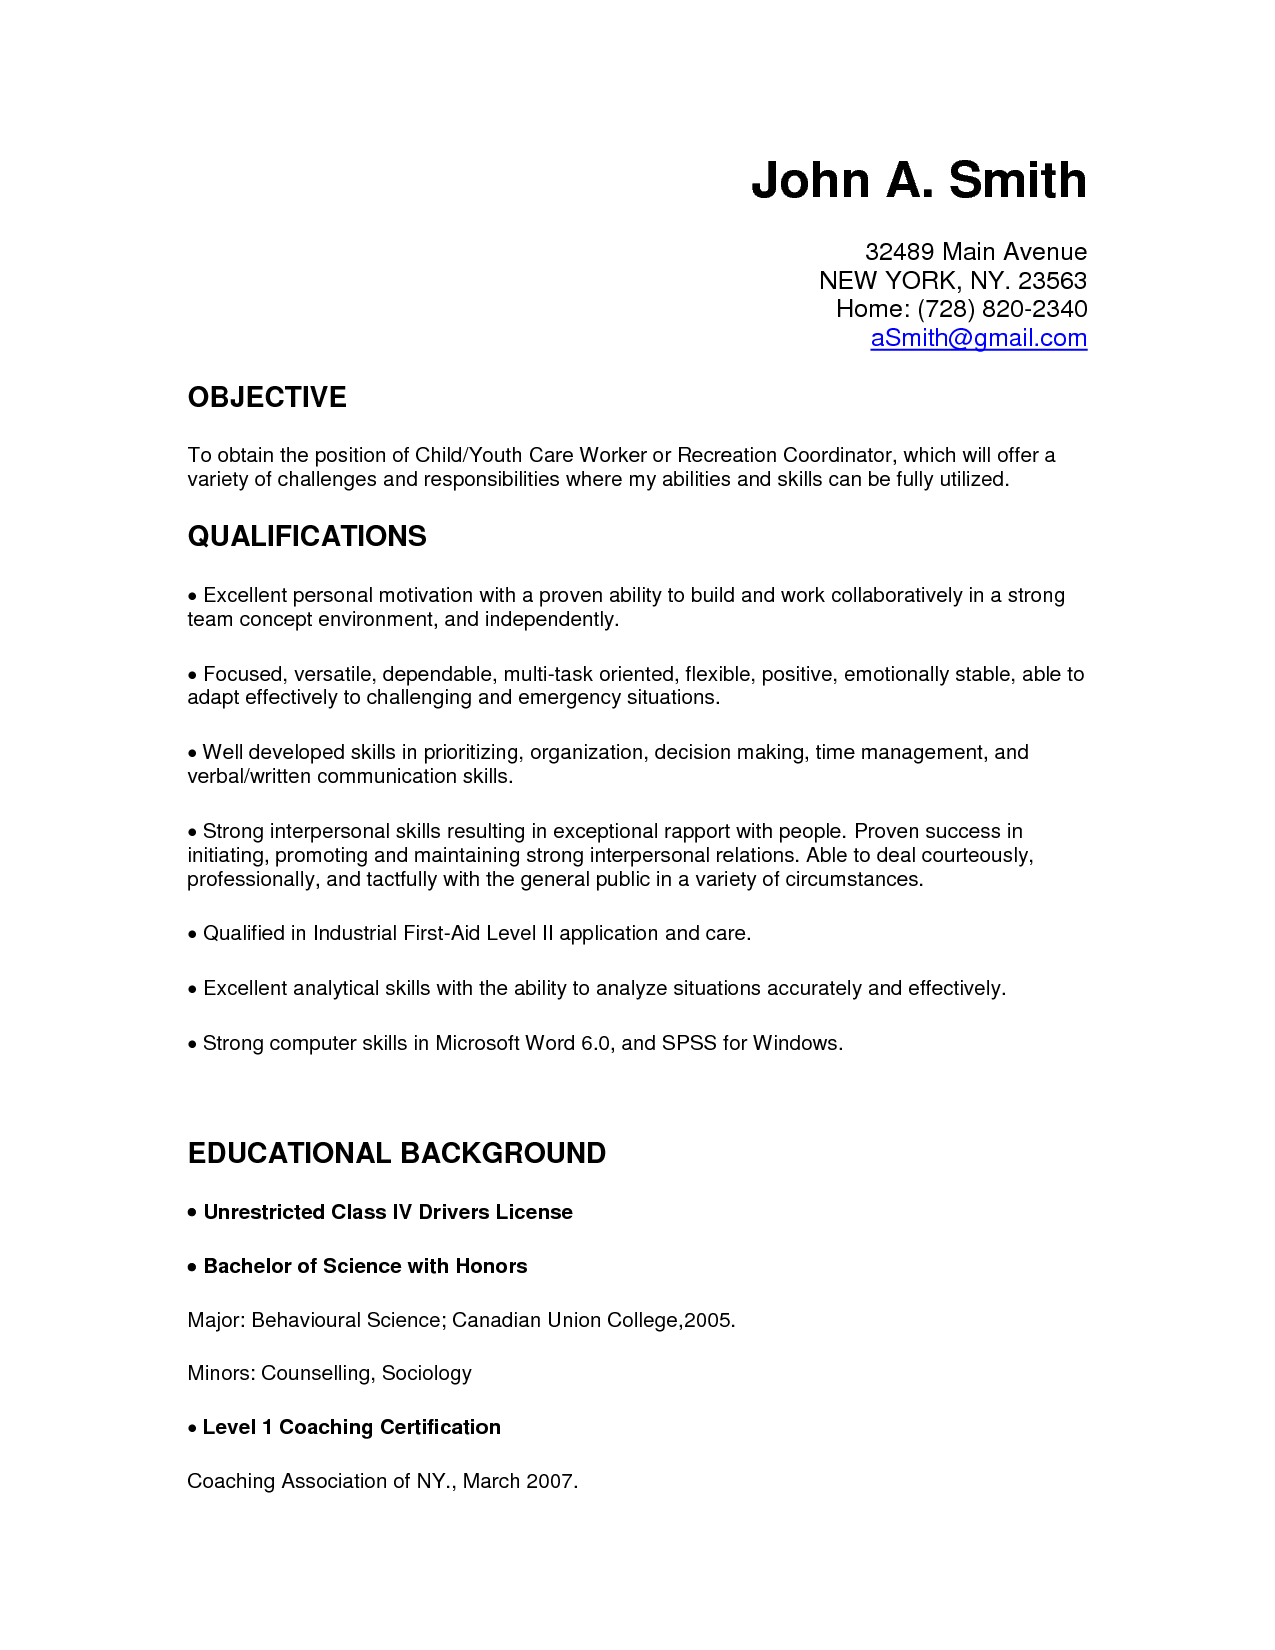 Child Care Resume Cover Letter - http://www.resumecareer.info ...